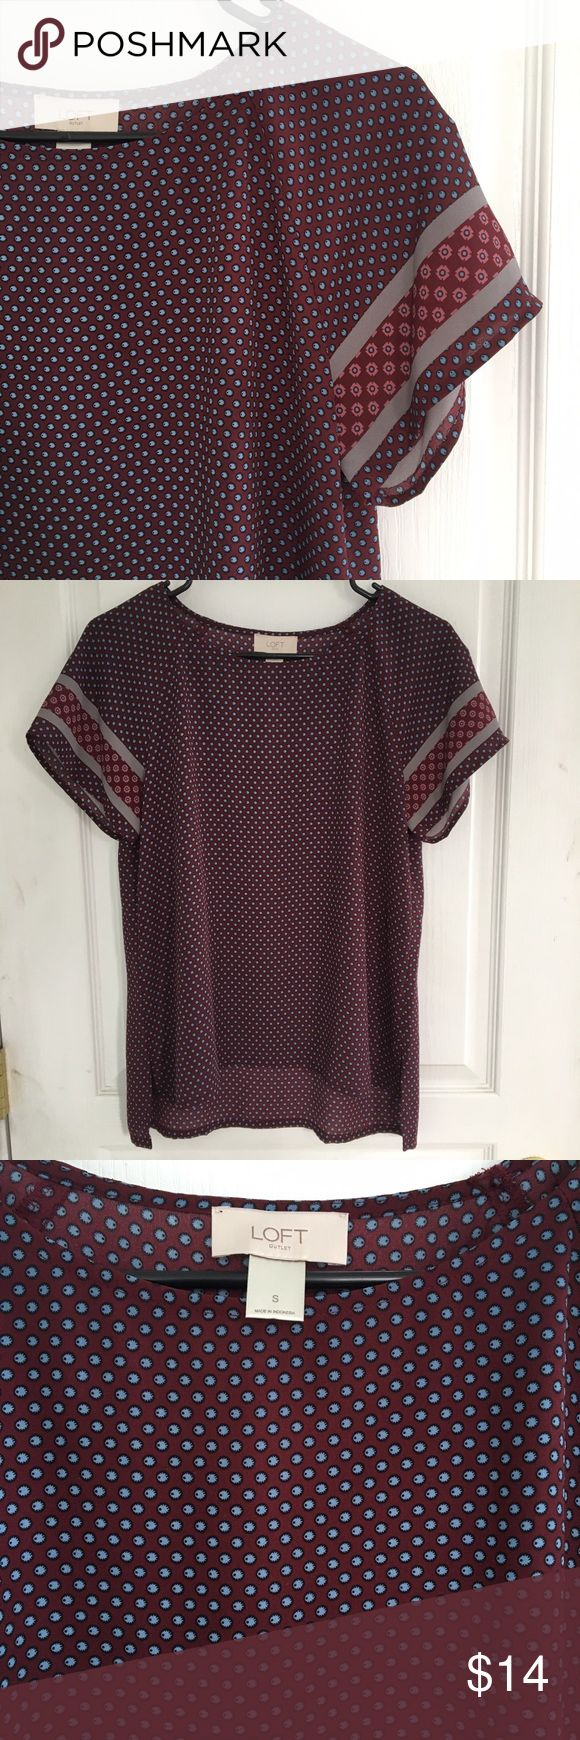 Burgundy and blue polka dot top Beautiful burgundy LOFT short sleeve top with blue polka dots.  Lightweight, silky material. Perfect condition, size small. LOFT Tops